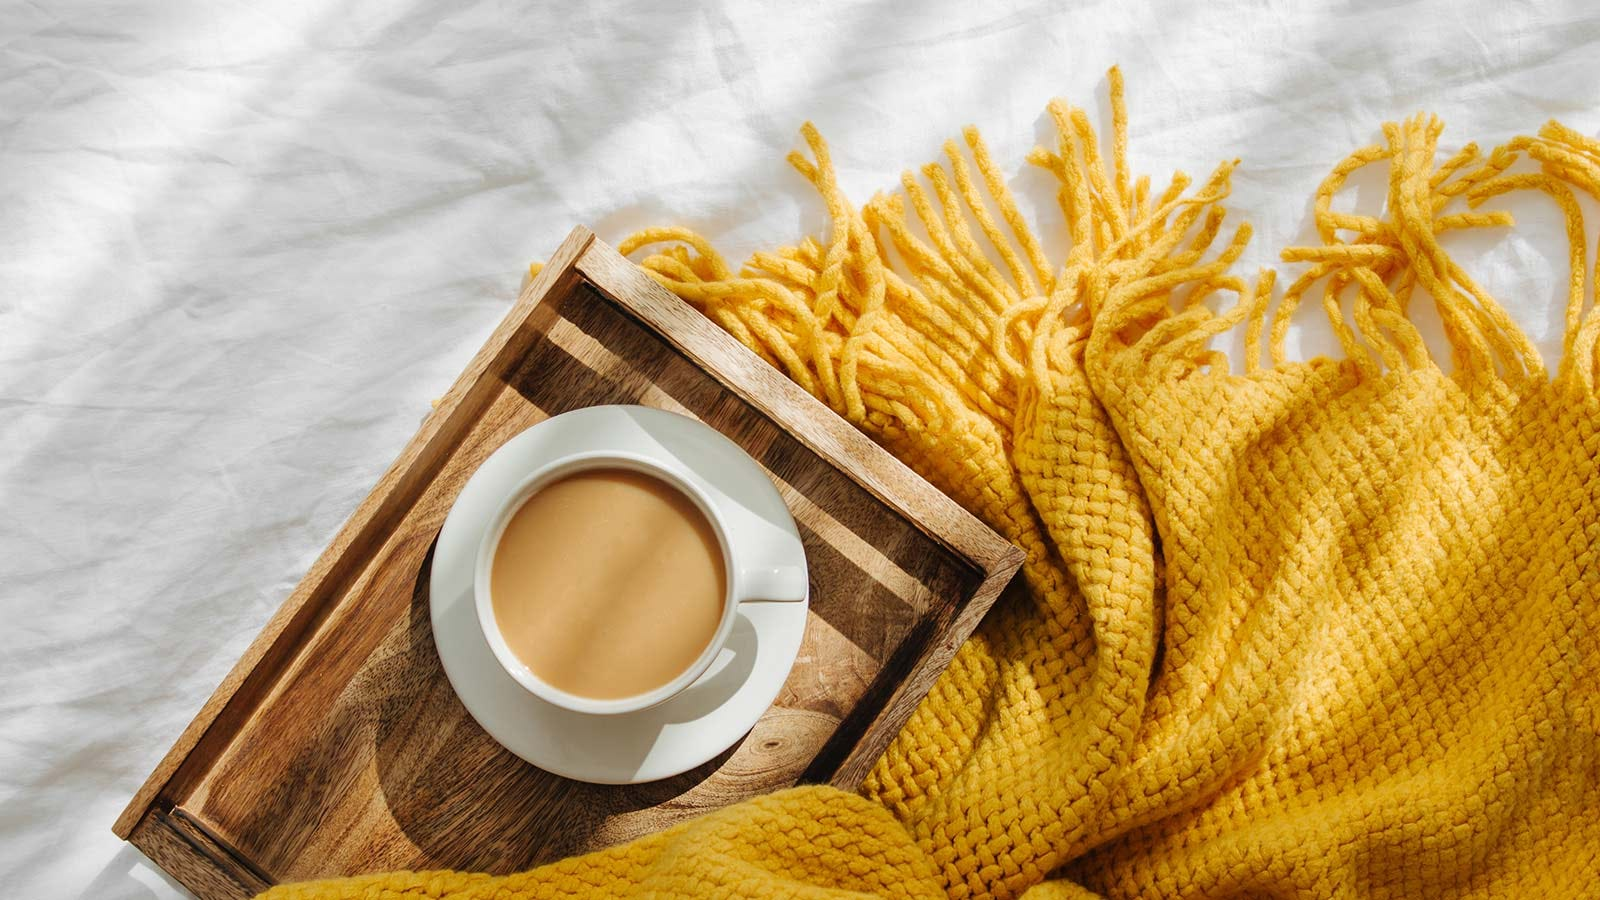 A wooden tray with a cup of coffee on it, sitting on a bed.